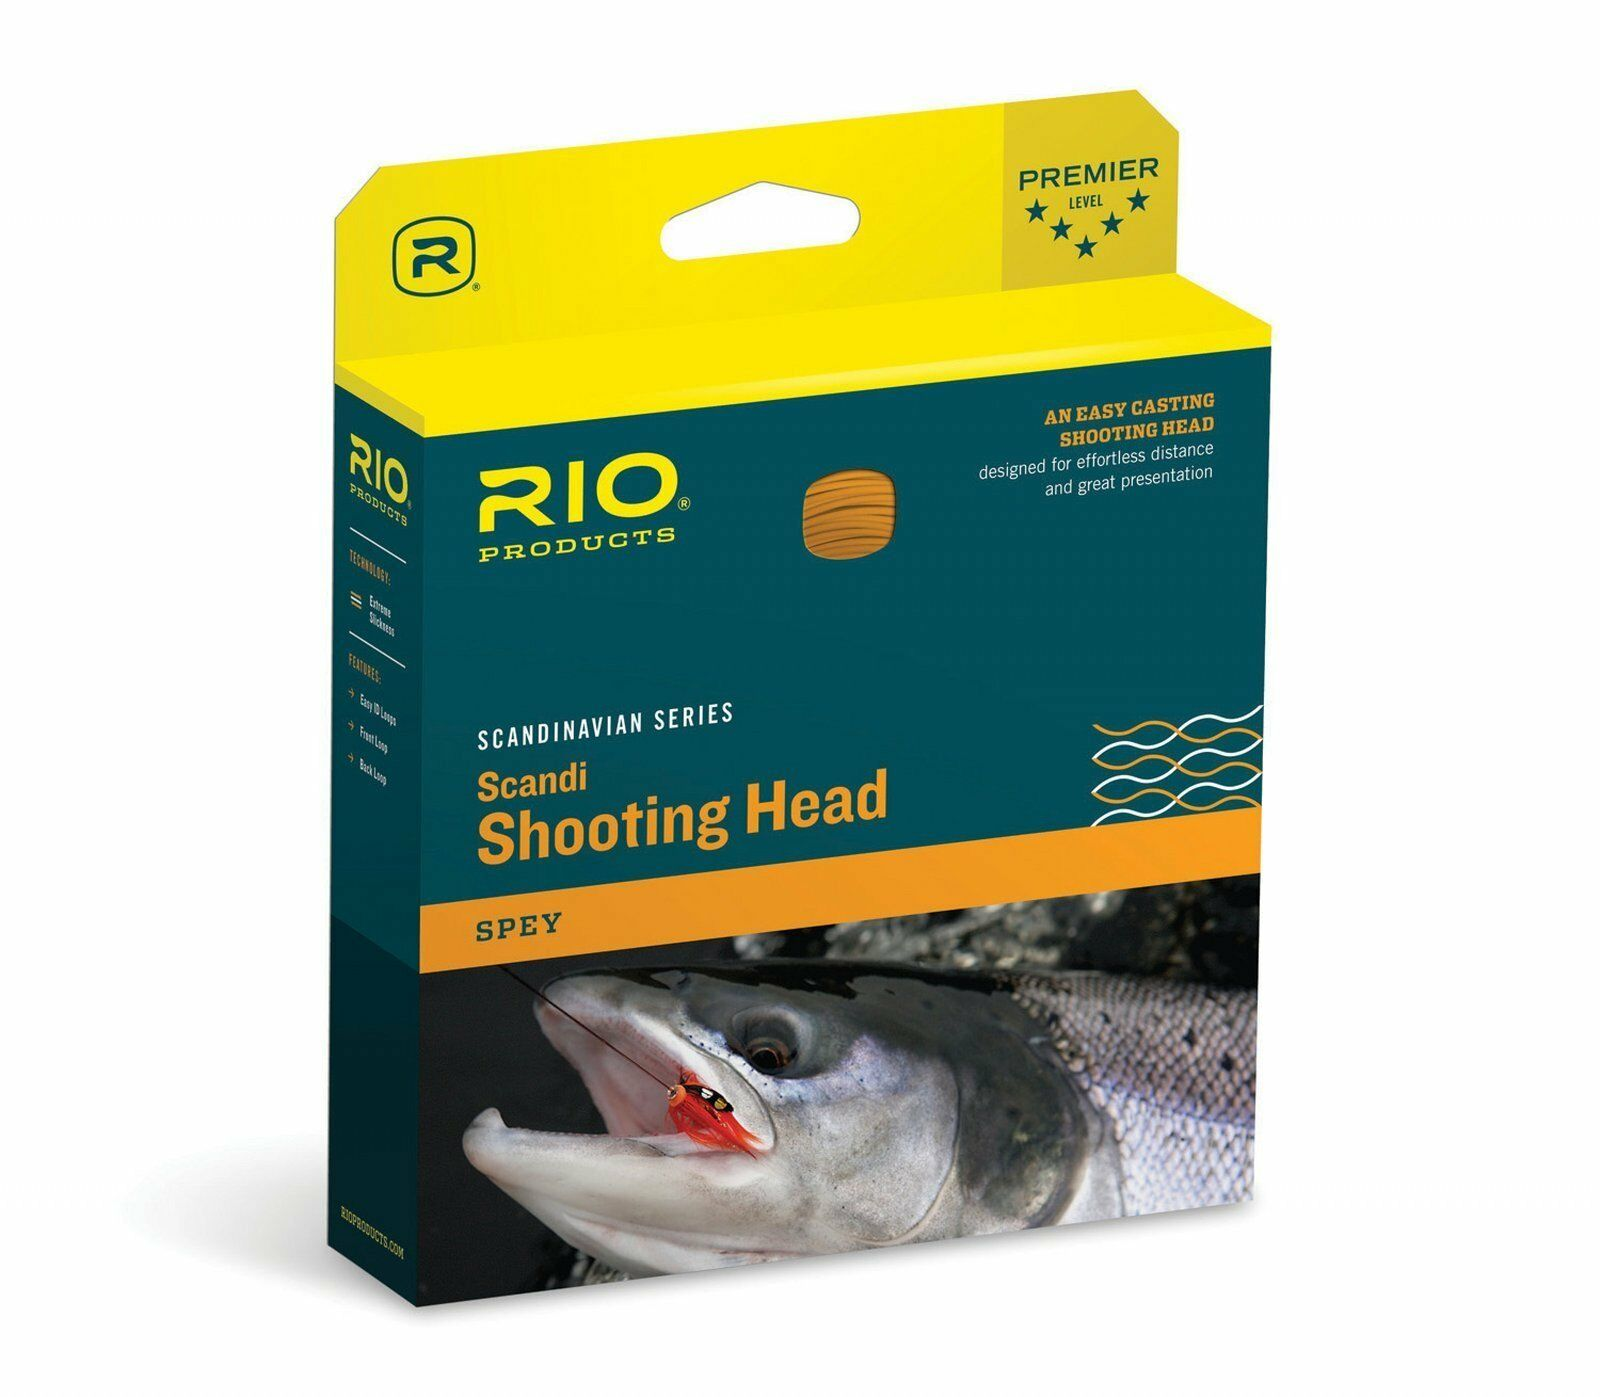 RIO NEW  SCANDI SHORT 510-GR 8 WT SPEY ROD CONNECTCORE SHOOTING FLY LINE HEAD  wholesale cheap and high quality